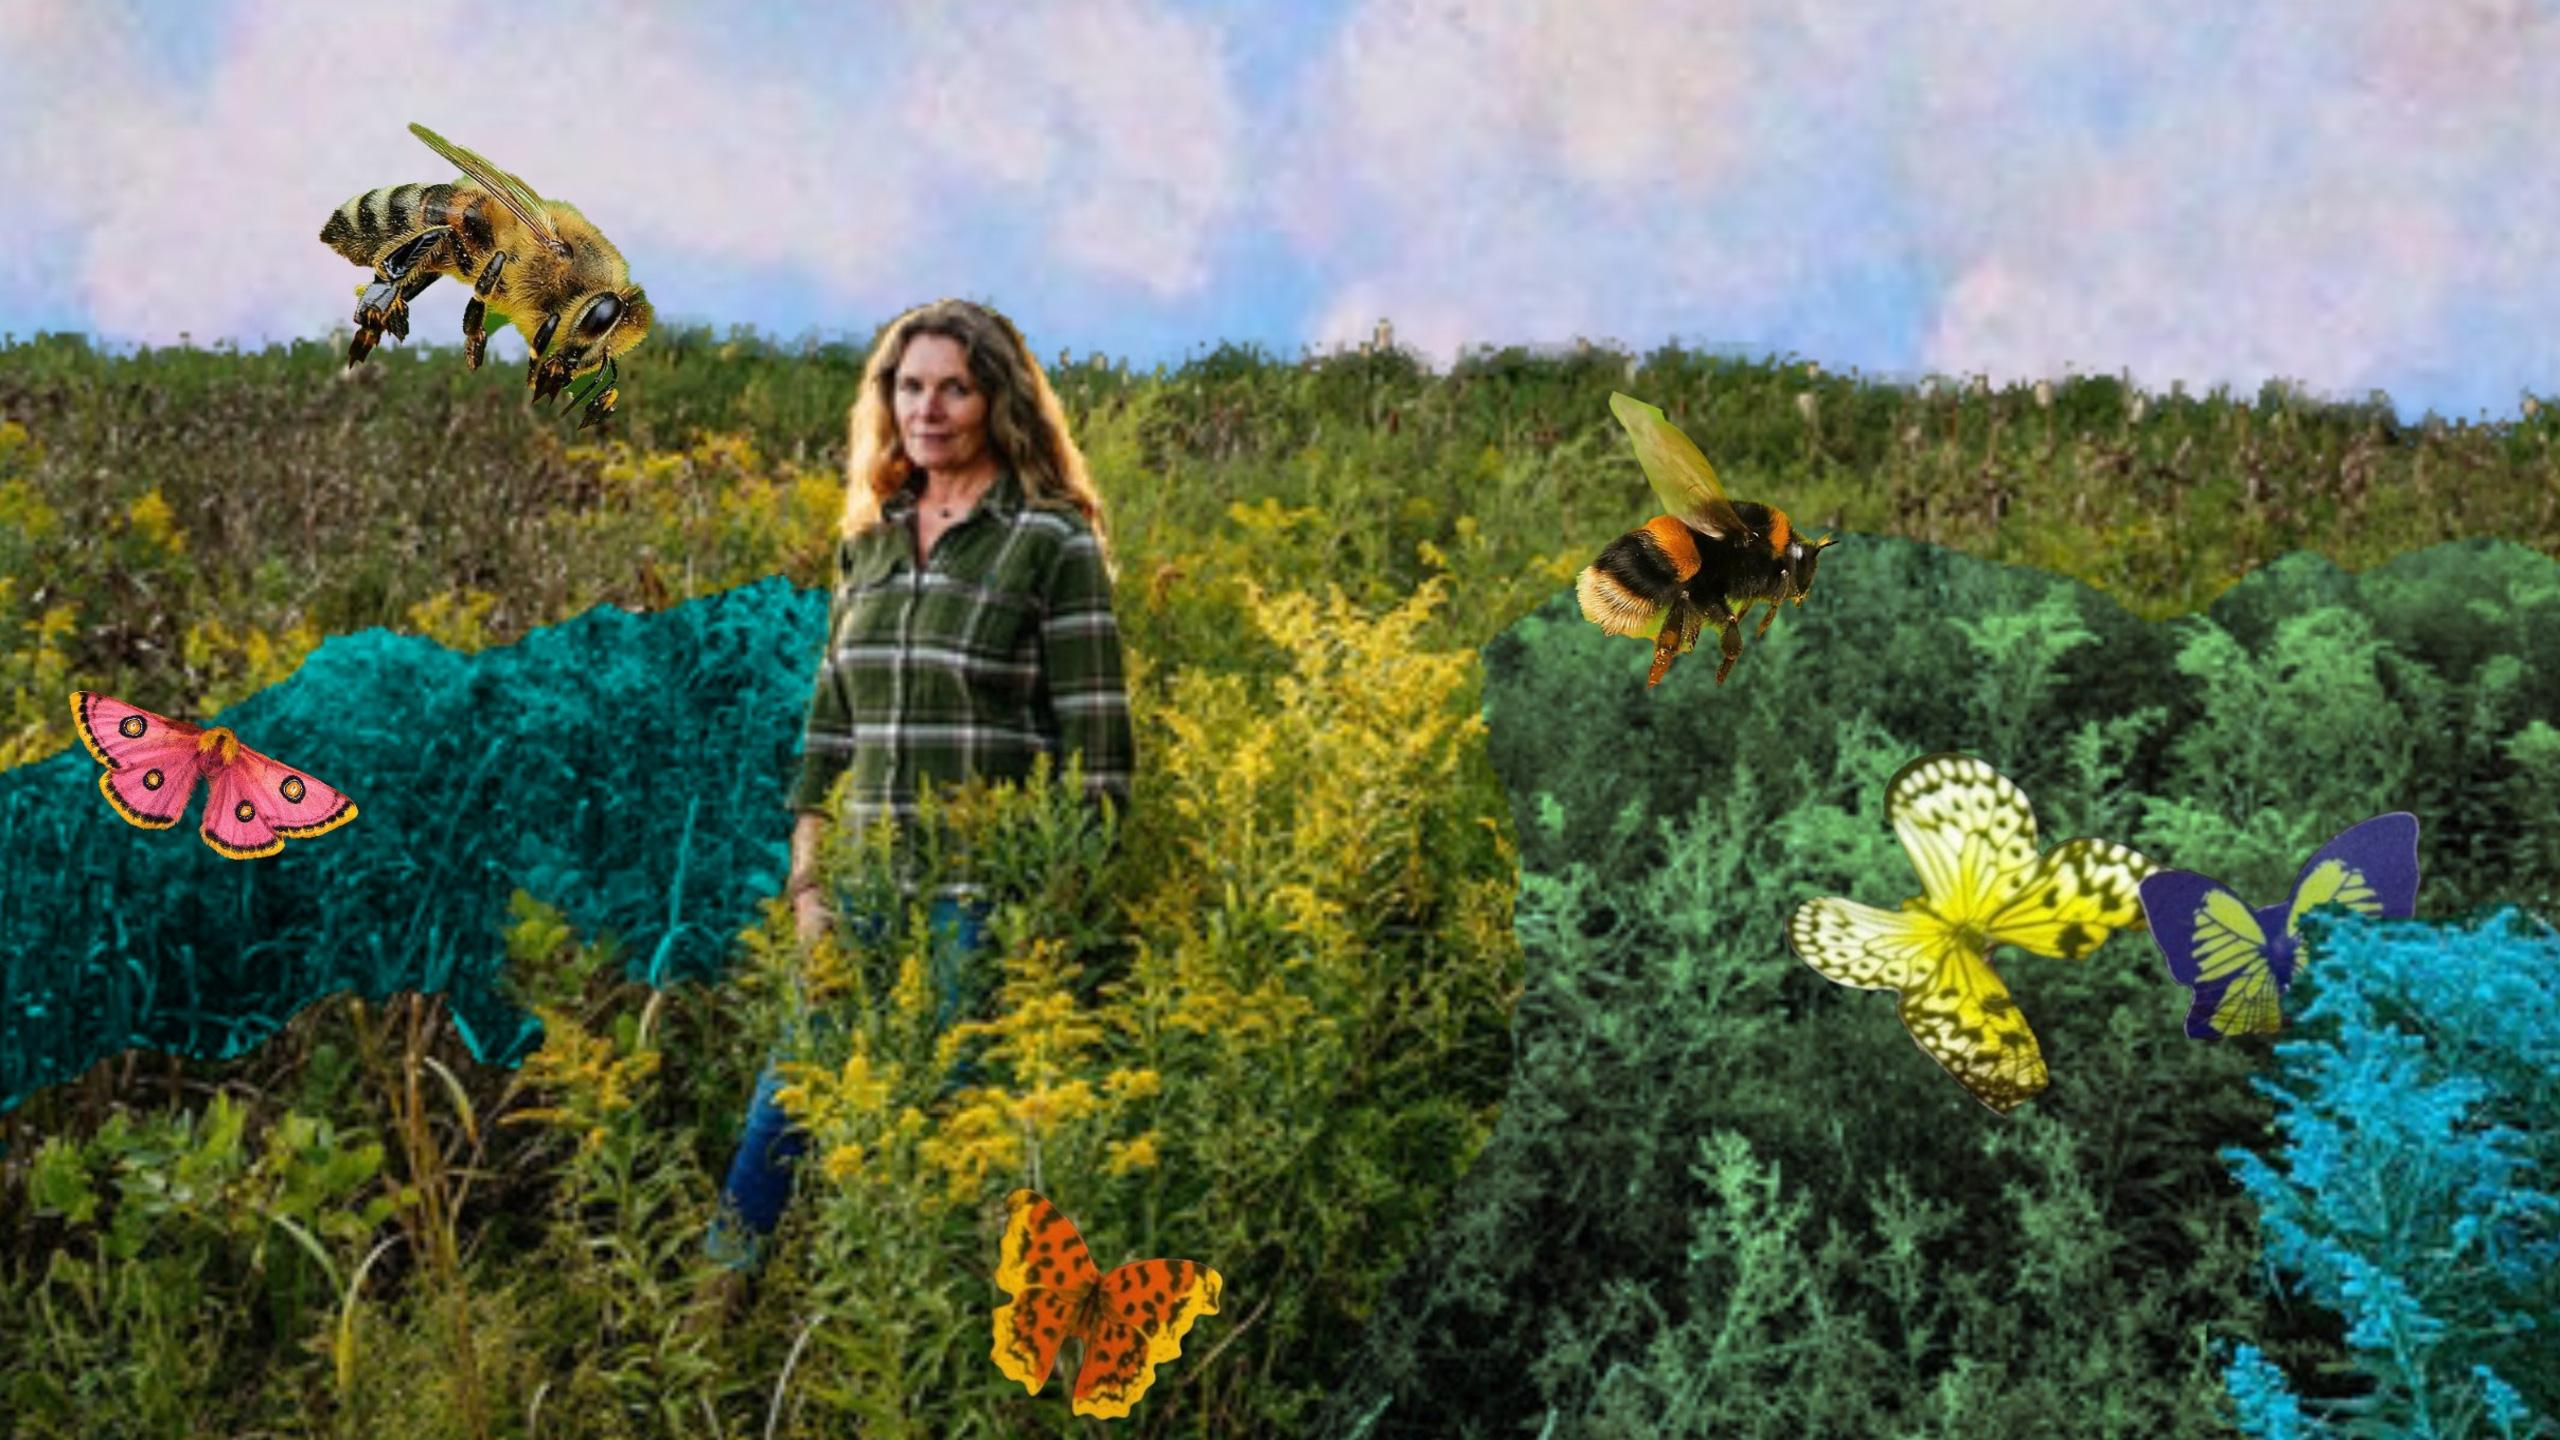 Collage of a professor Nina-Marie Lister standing in a field with bumblebees and butterflies.